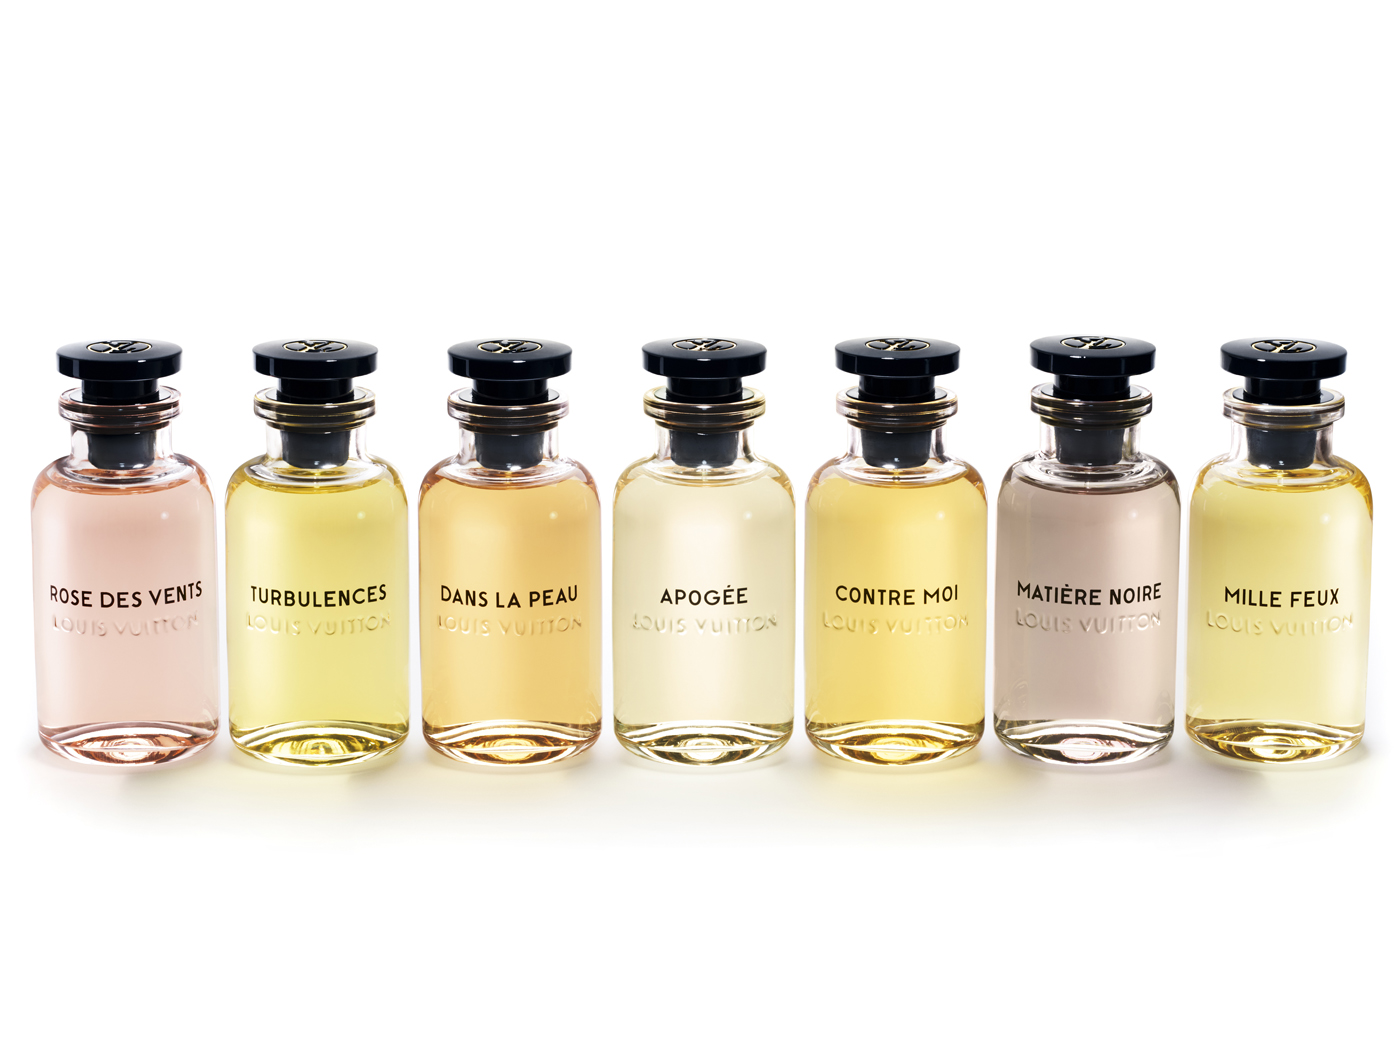 Louis Vuitton enters the fragrance fray